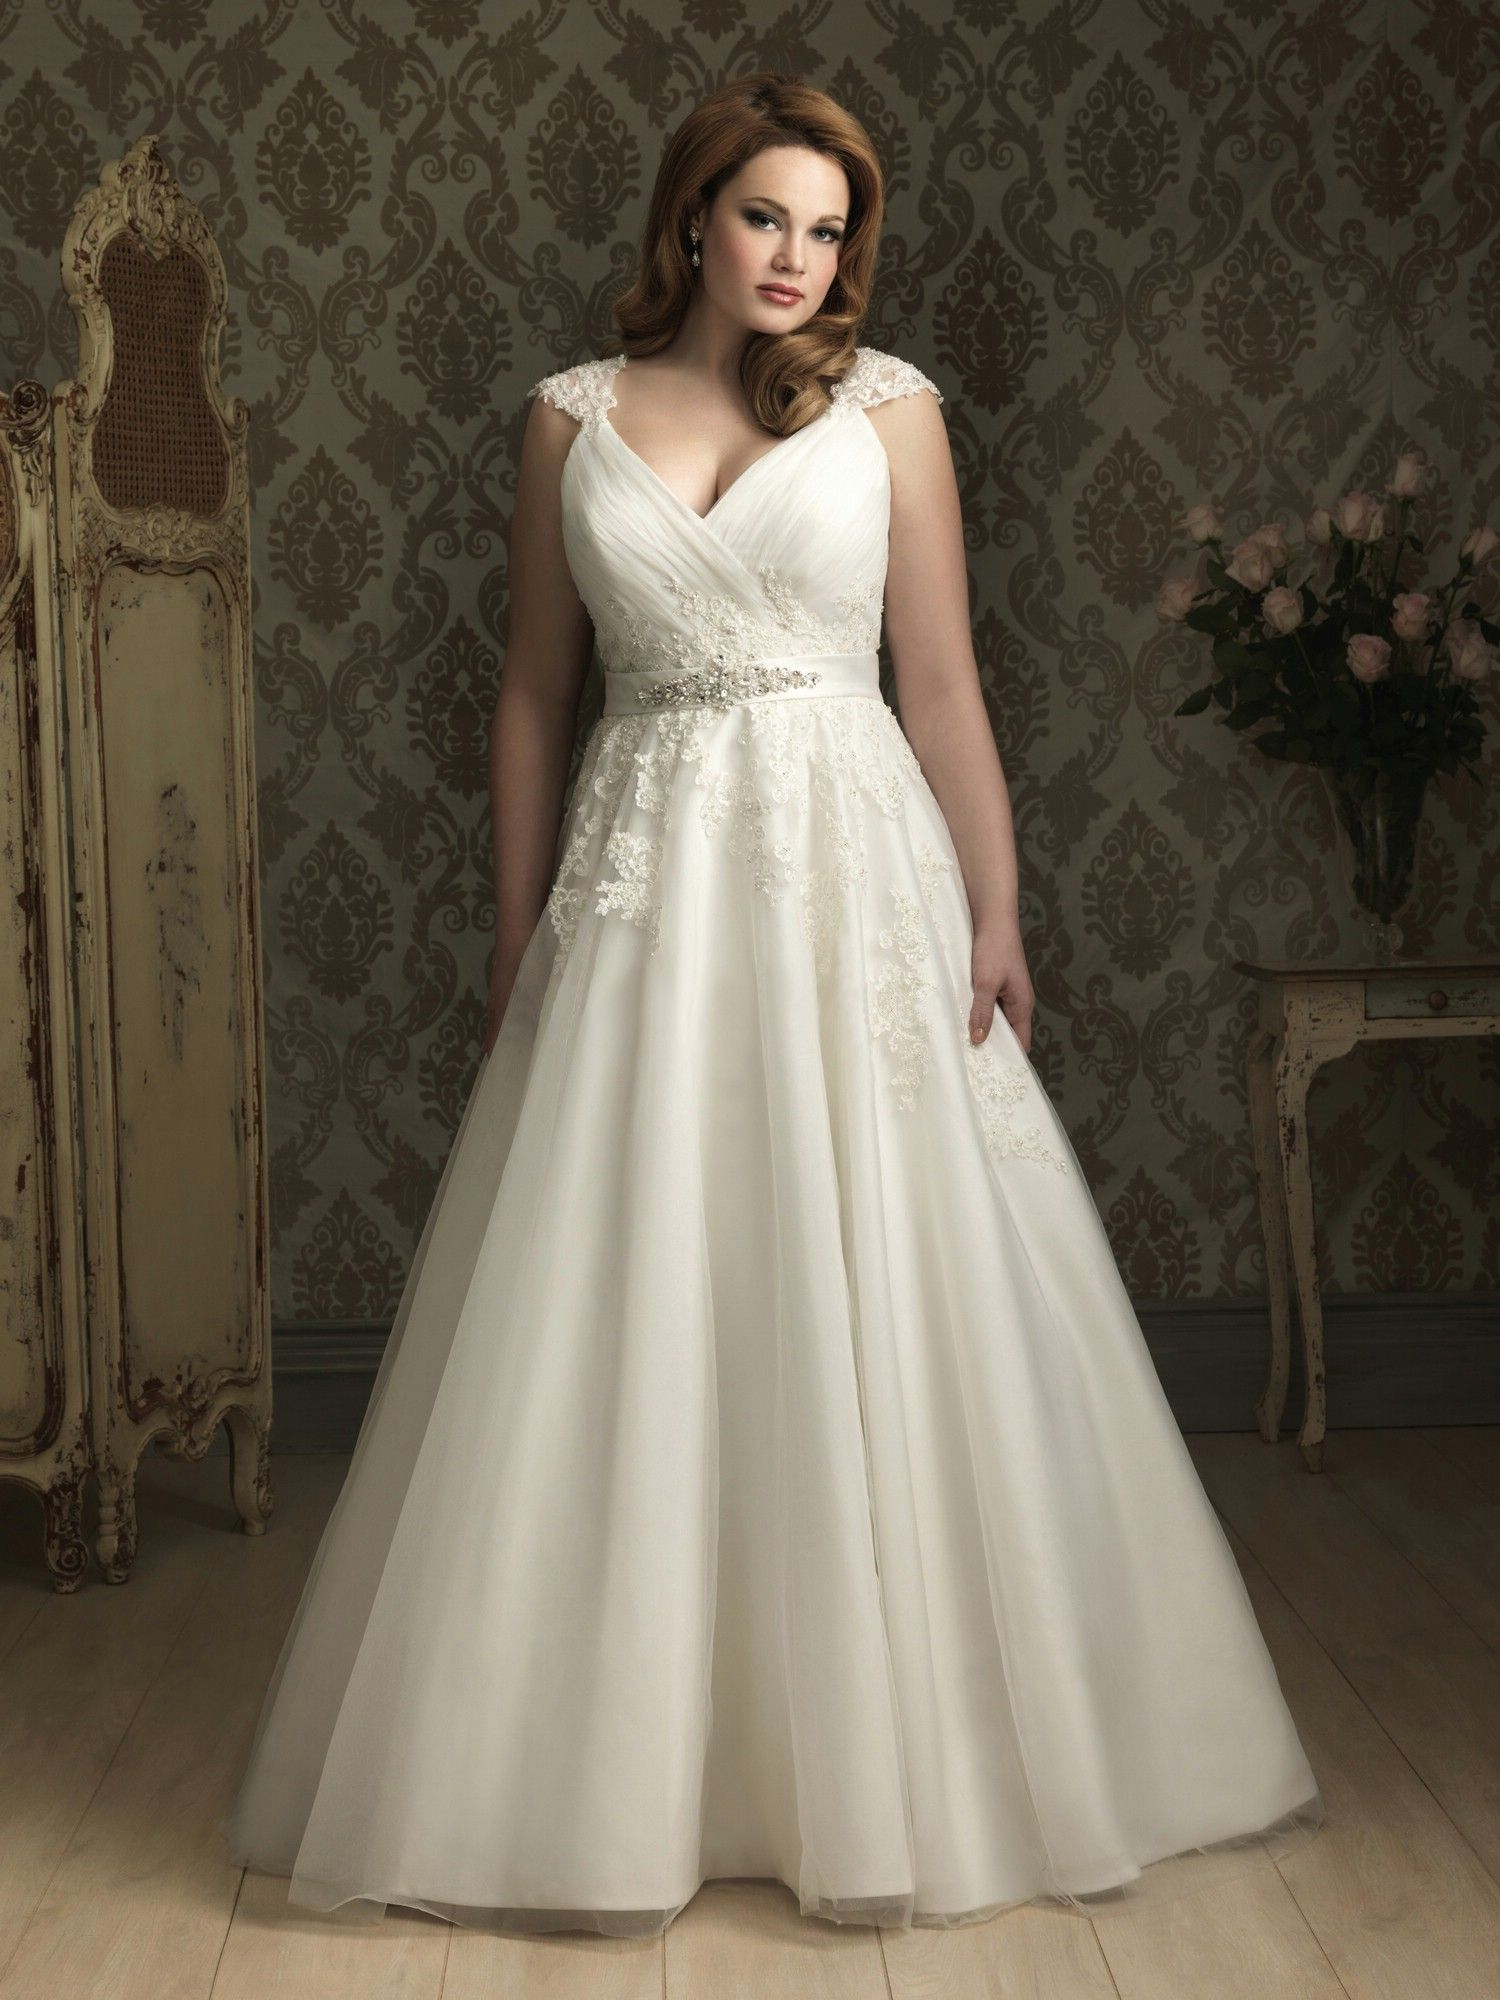 Lace ball gown wedding dresses for plus size design ideas on cake